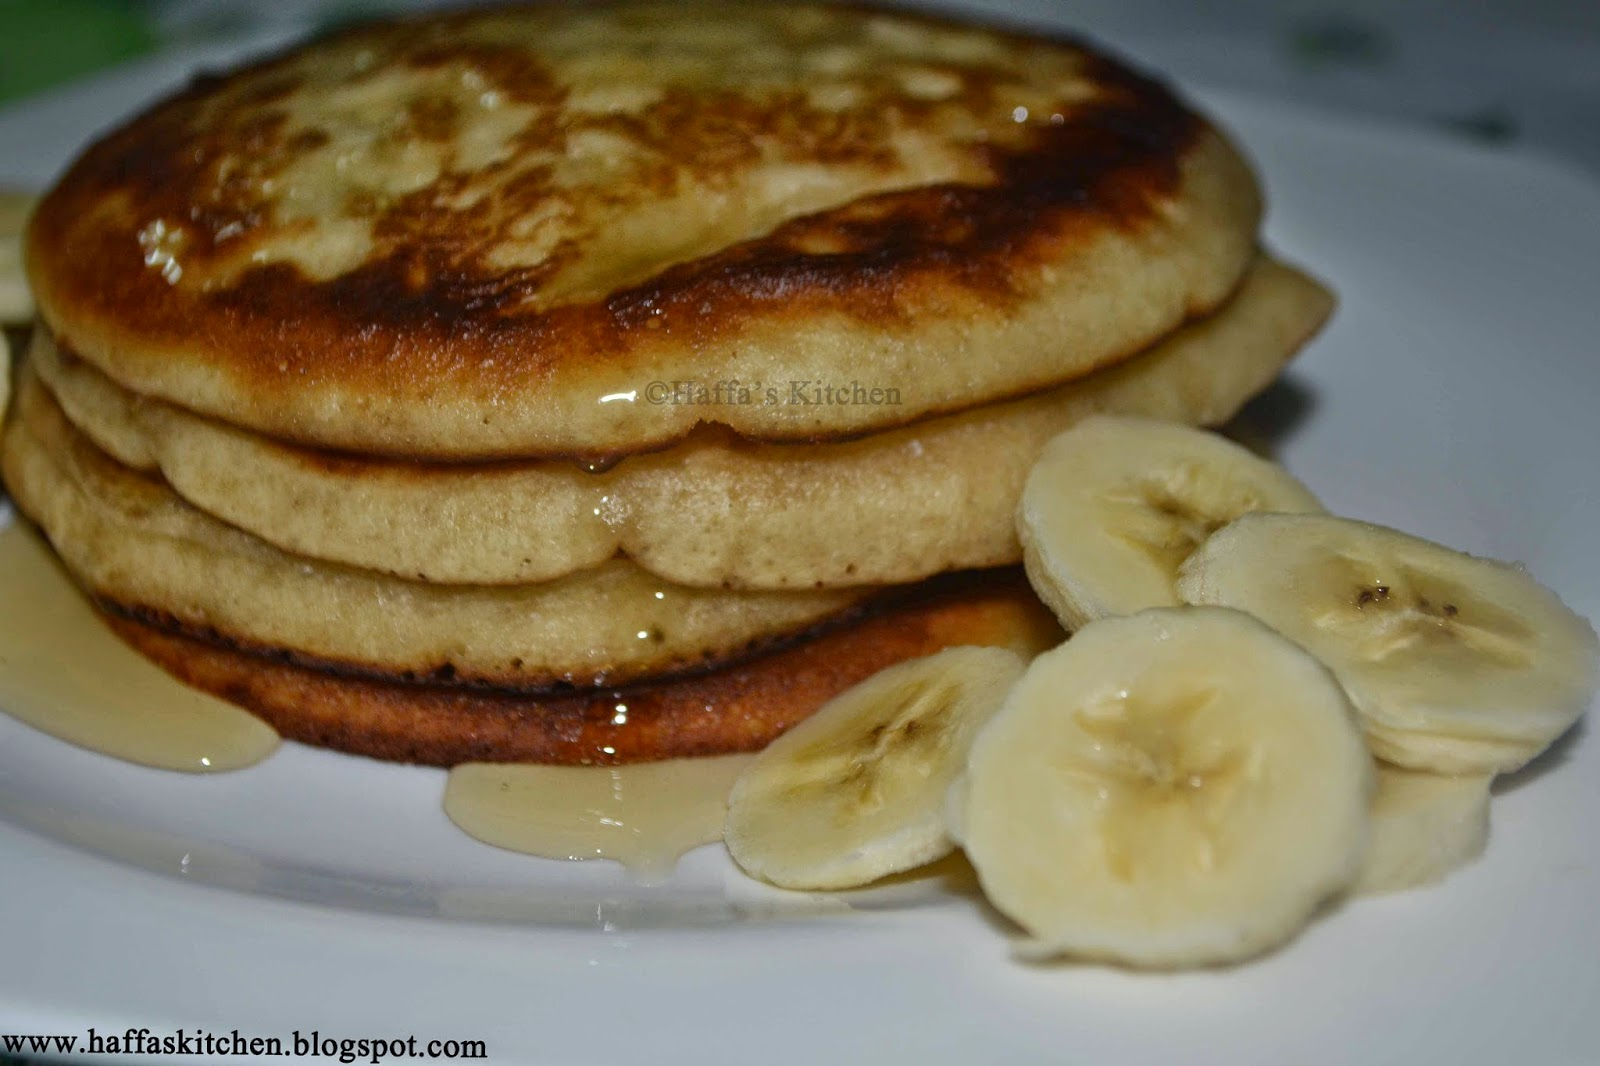 pancake recipes| best pancake recipe| simple pancake recipe| pancake mix recipe| pancake mix| pancake recipe| recipes for pancakes|